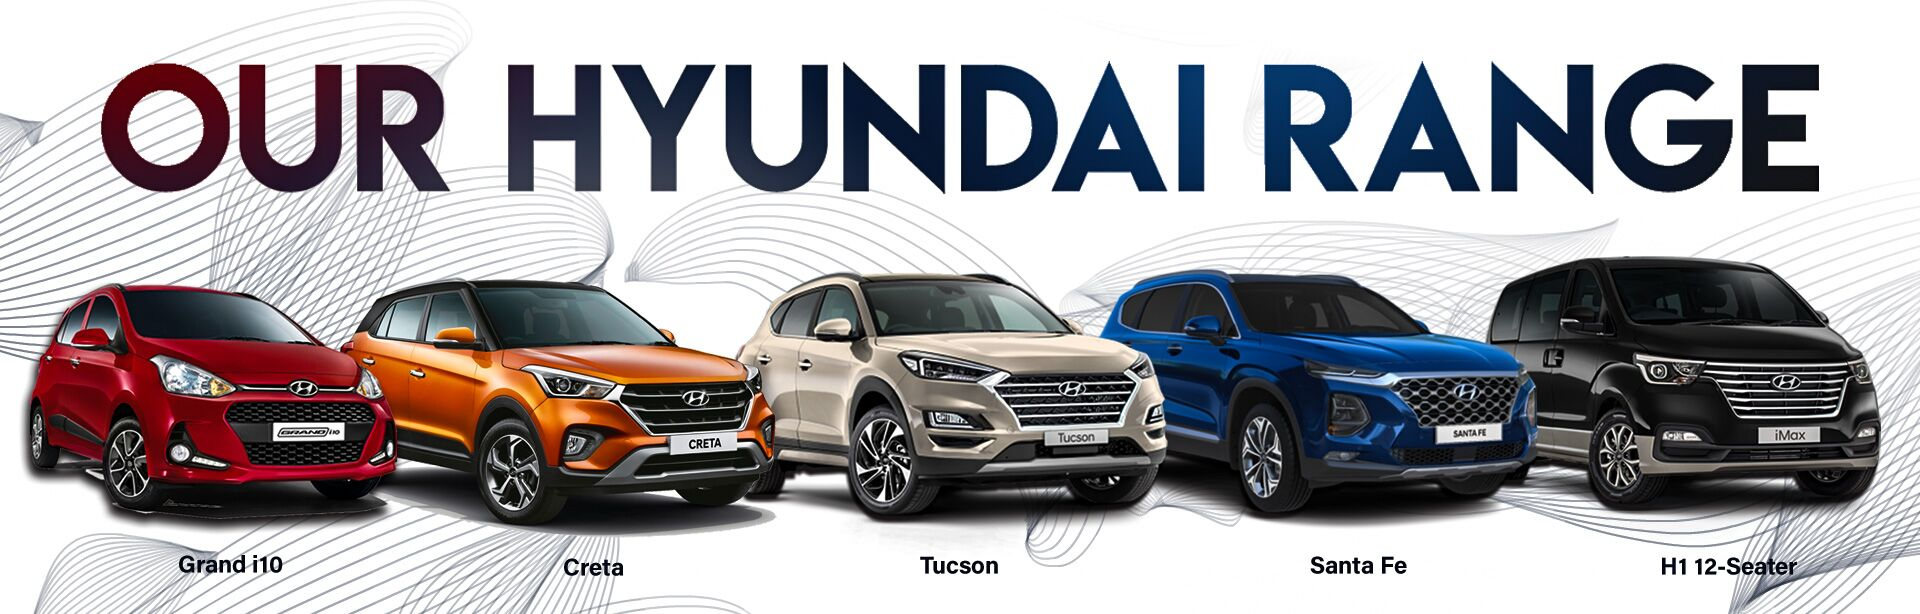 CURRENT HYUNDAI RANGE - WEBSITE